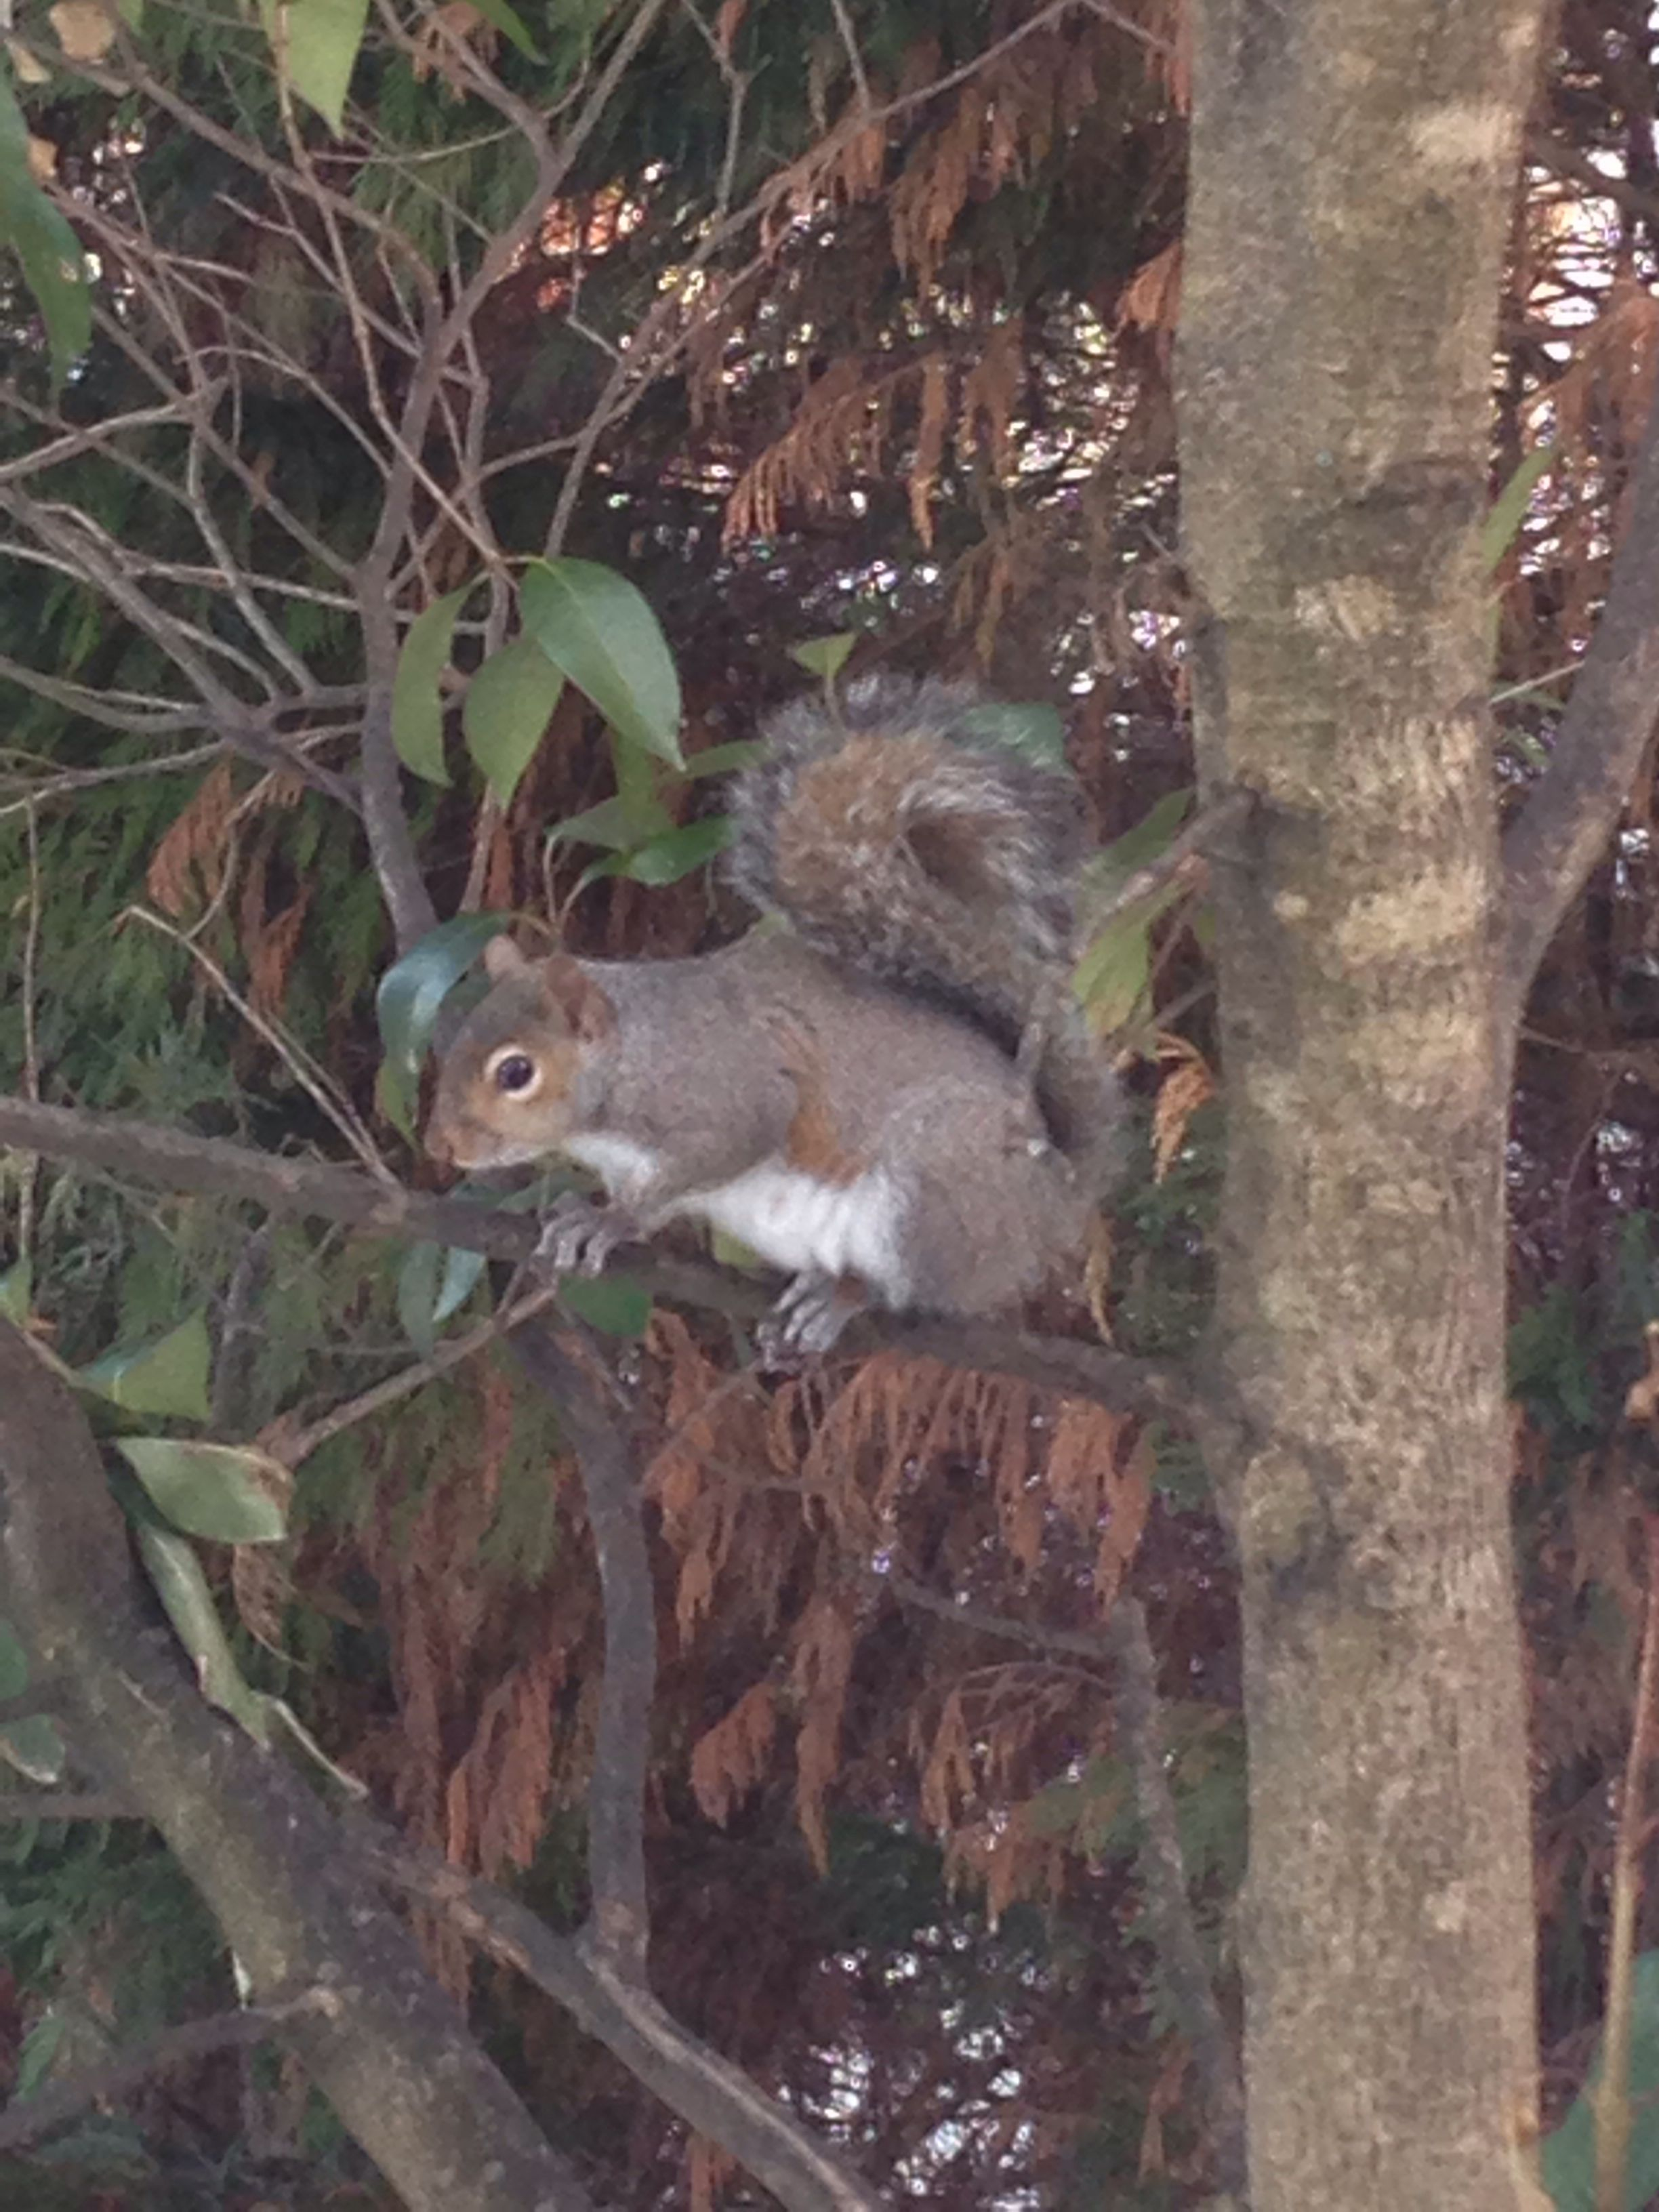 Our backyard squirrel after winter storm PAX- happy the now has melted! No more freezing paws!